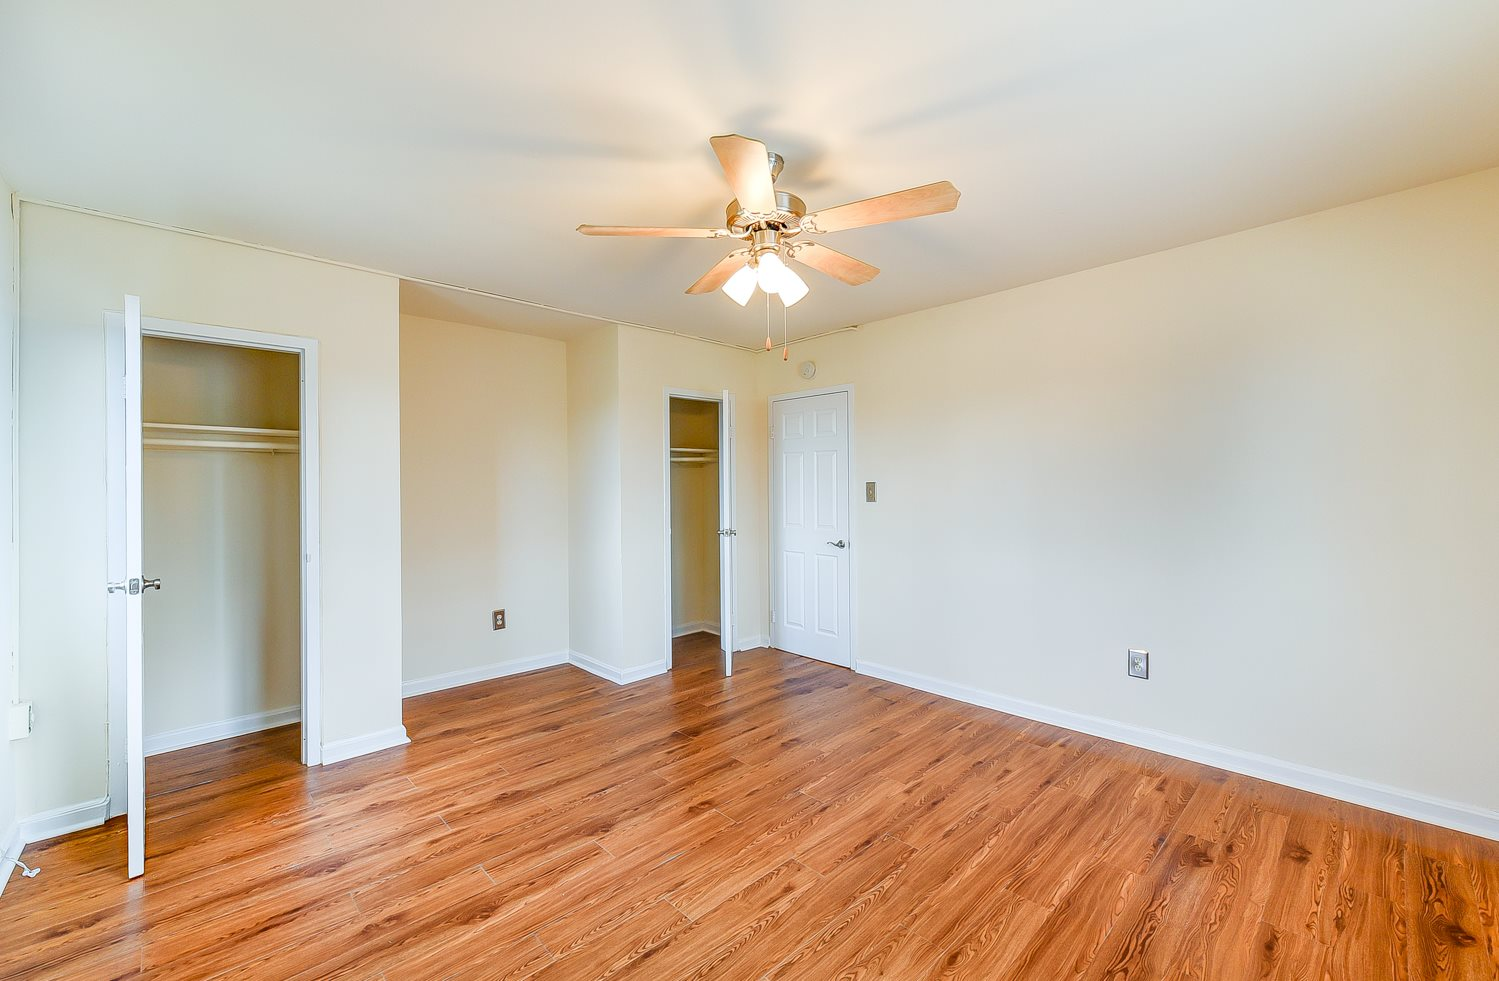 New-Horizon-Apartments-Bedroom-Closets-and-Ceiling-Fan